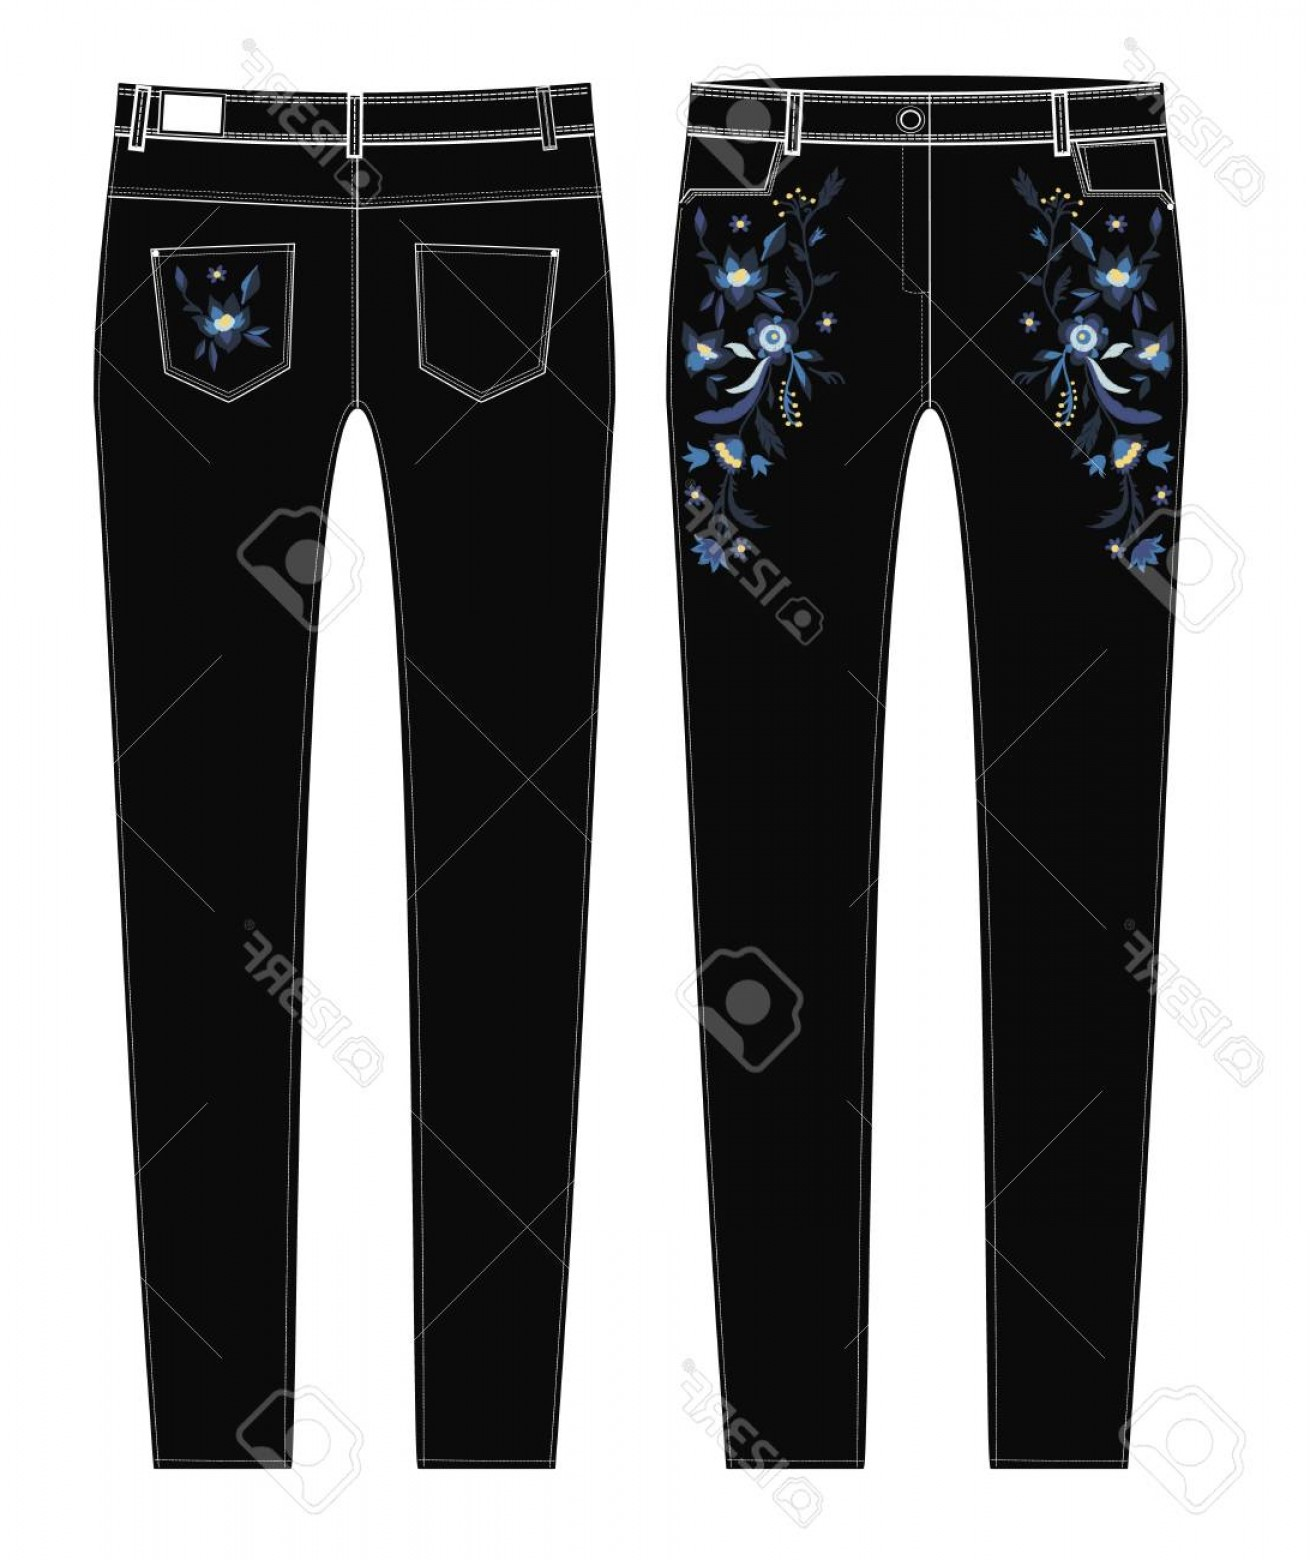 Vector Black Jeans: Photostock Vector A Sketch Of Front And Back Parts Of Black Jeans With Floral Embroidery